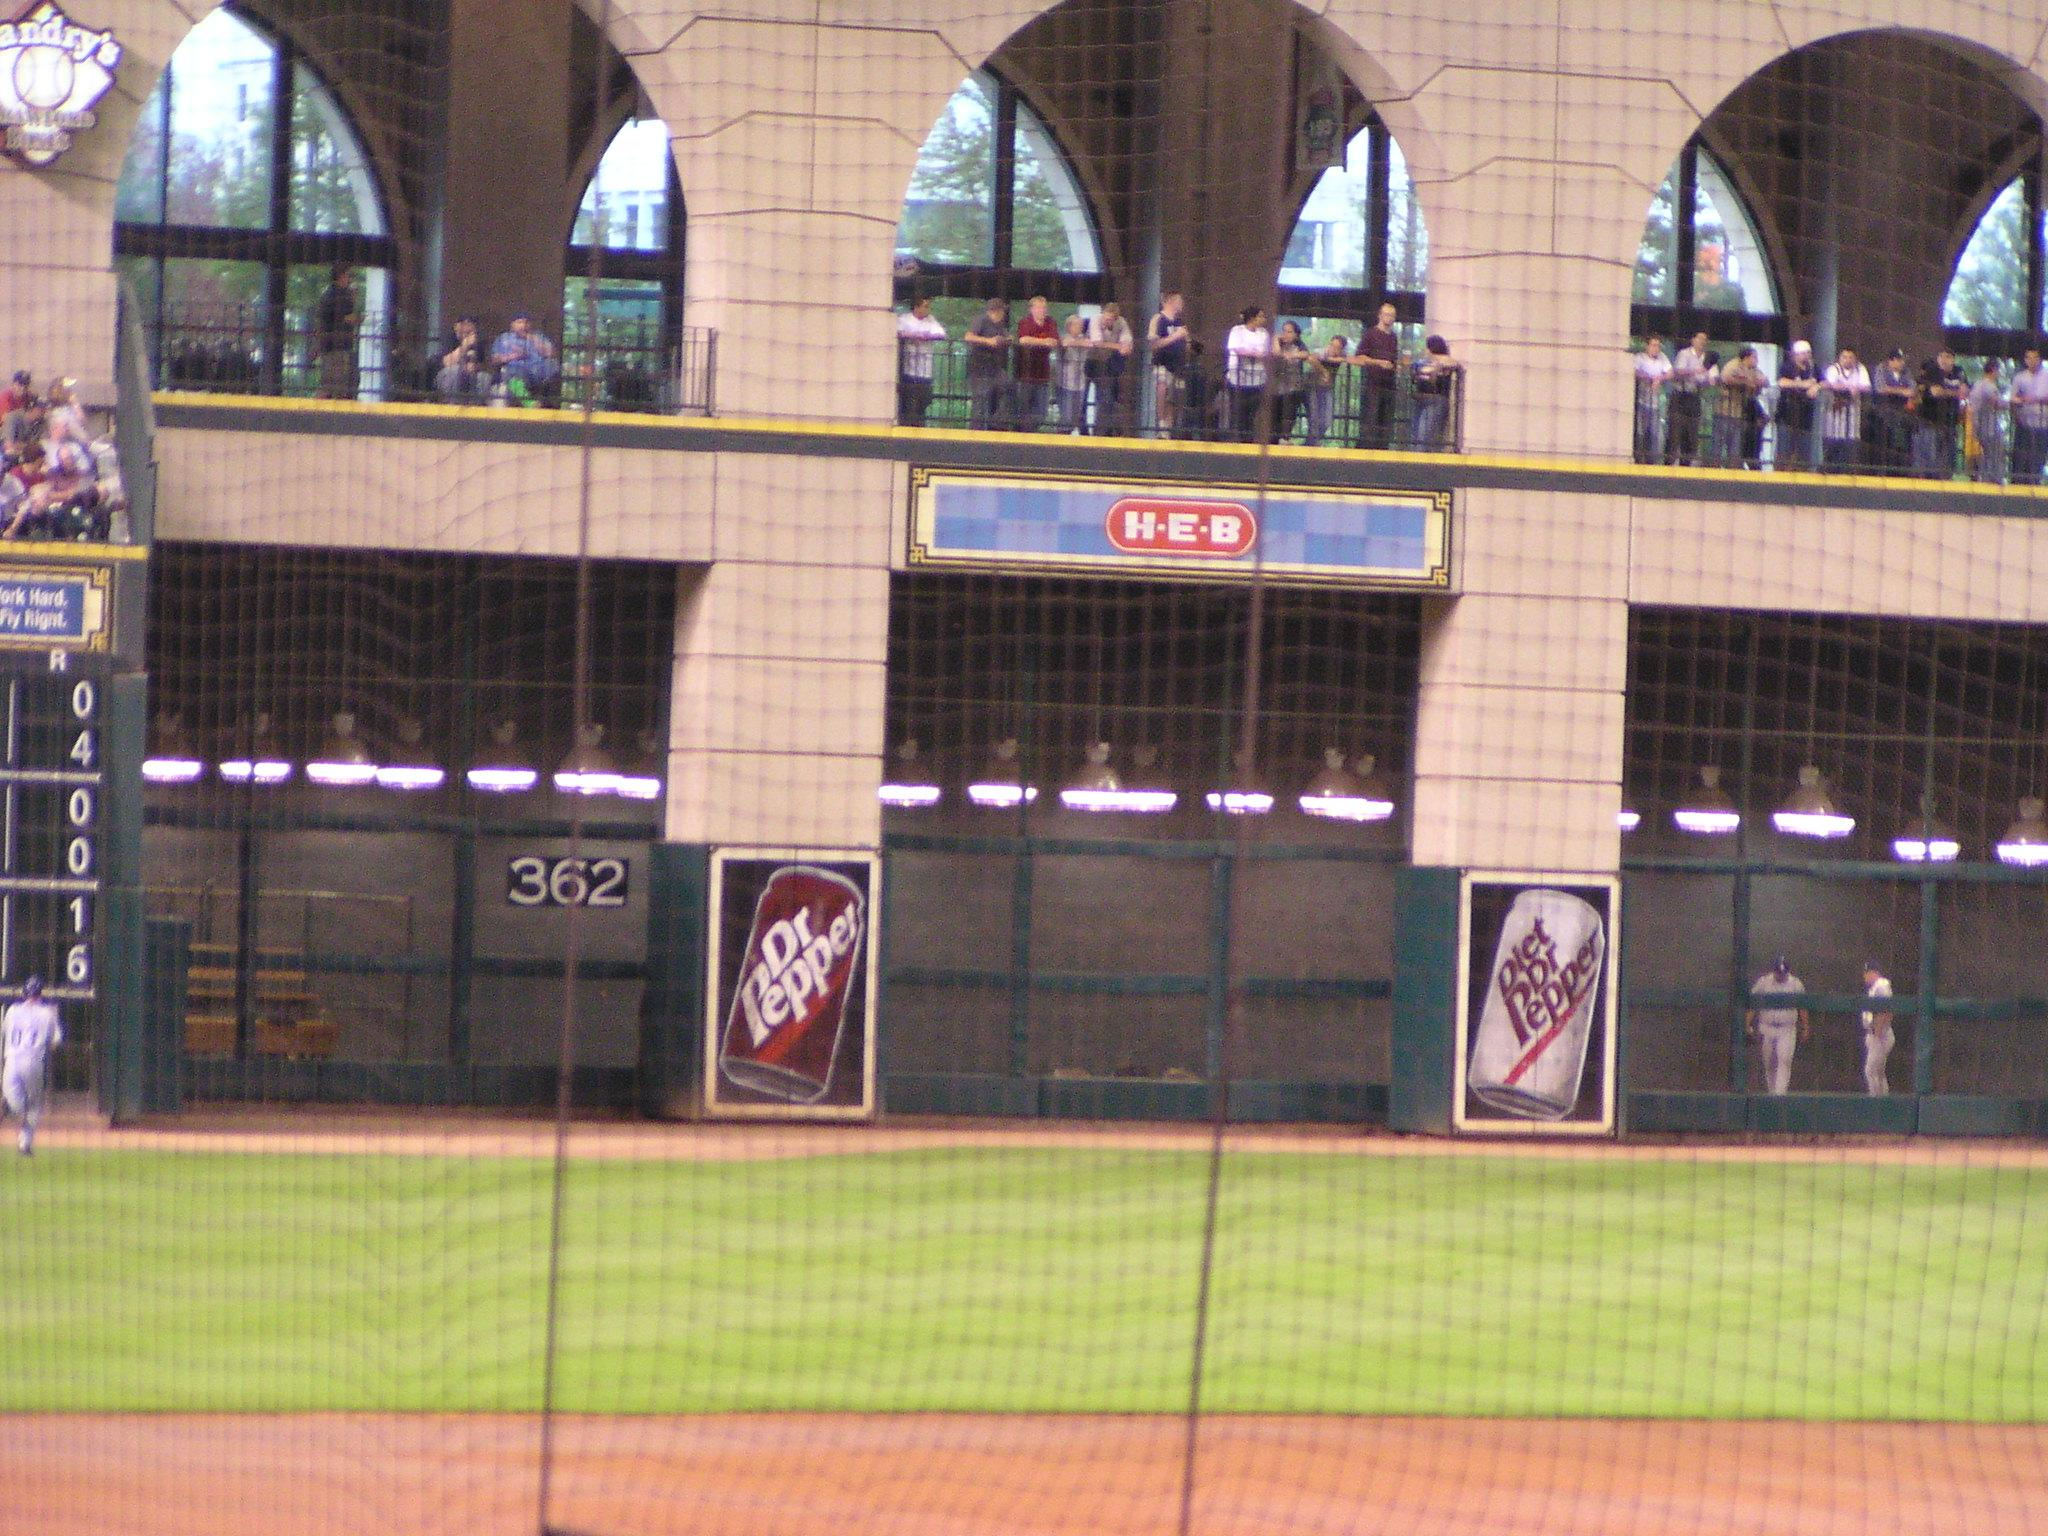 Minute Maid Park, Houston, Texas - August 28, 2003